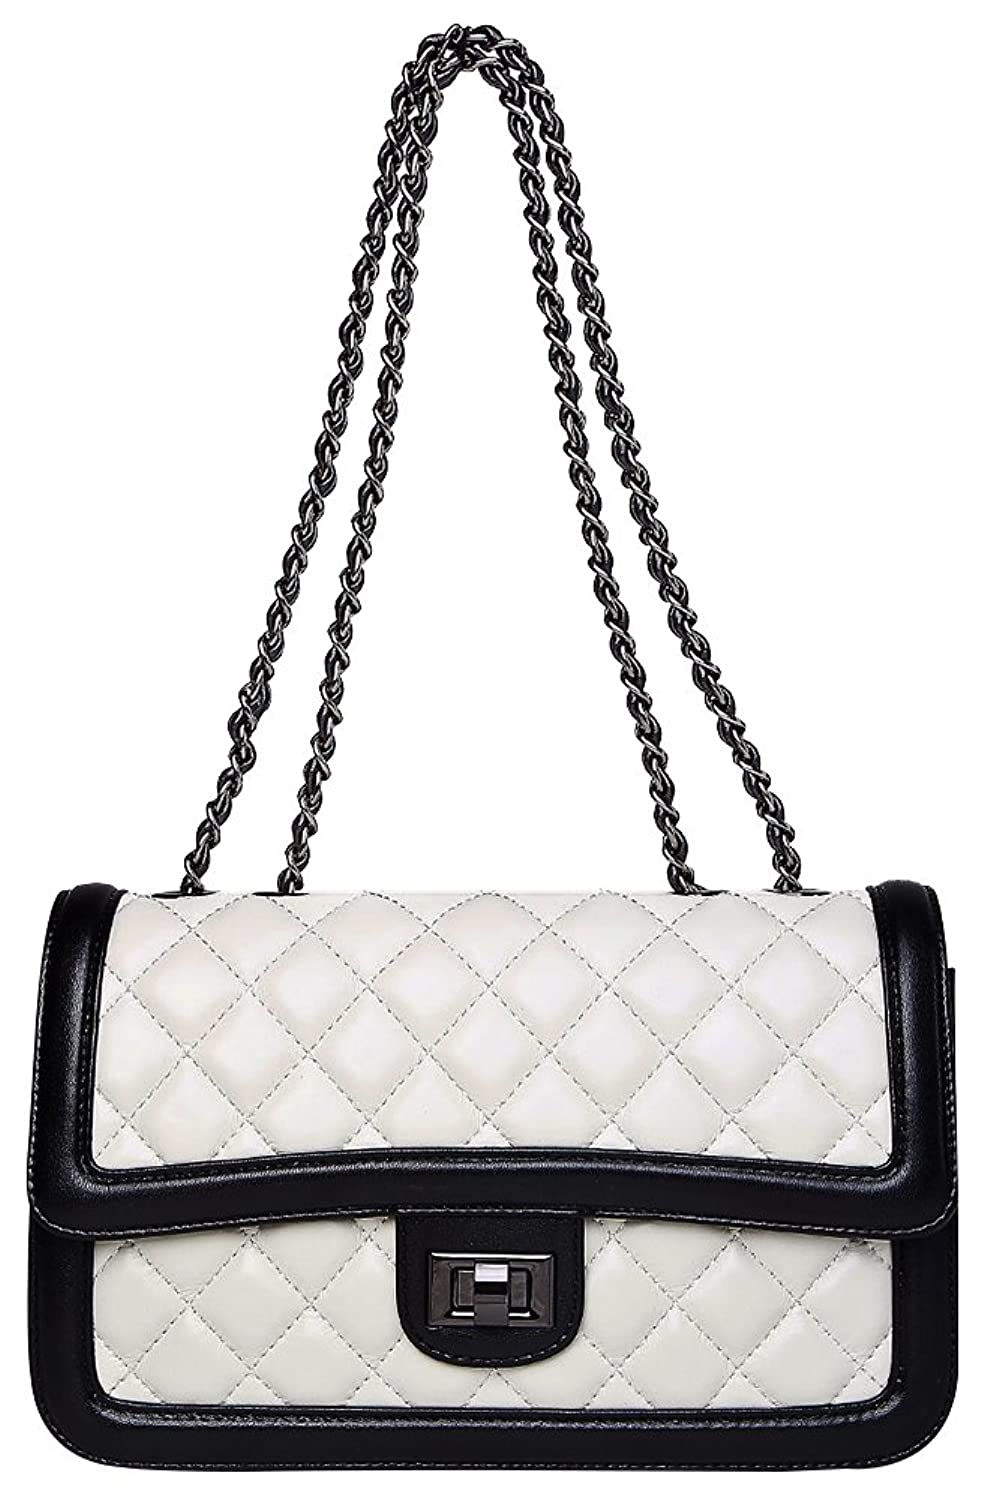 Zoppen Women's Sheep Leather Black-White Quilted Shoulder Bag